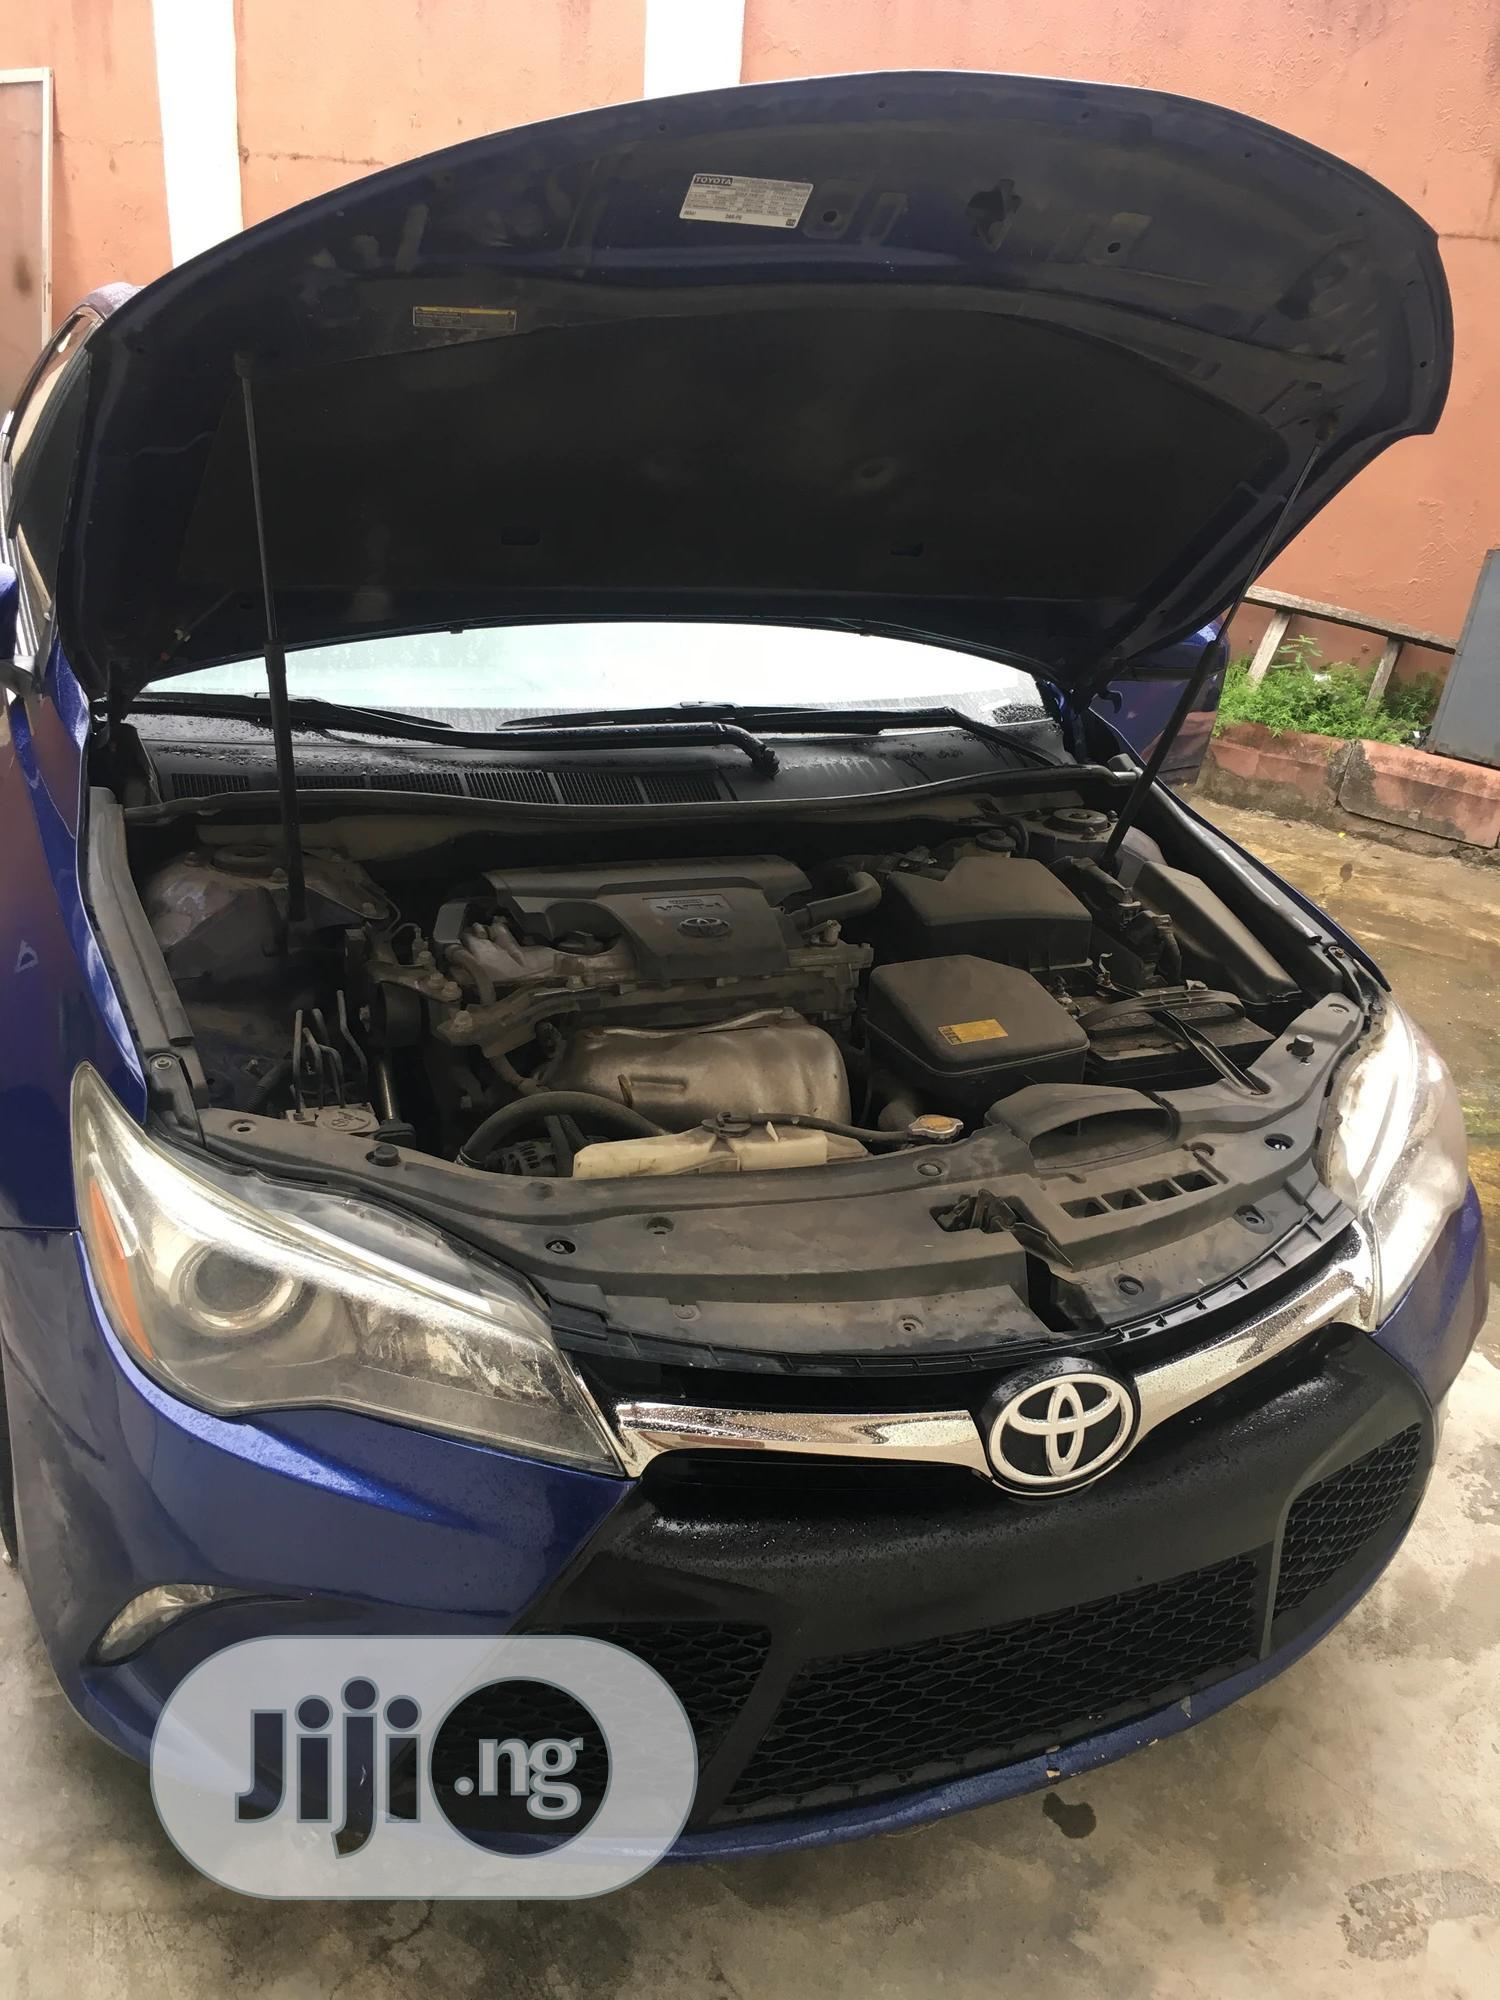 Toyota Camry 2016 Blue   Cars for sale in Amuwo-Odofin, Lagos State, Nigeria